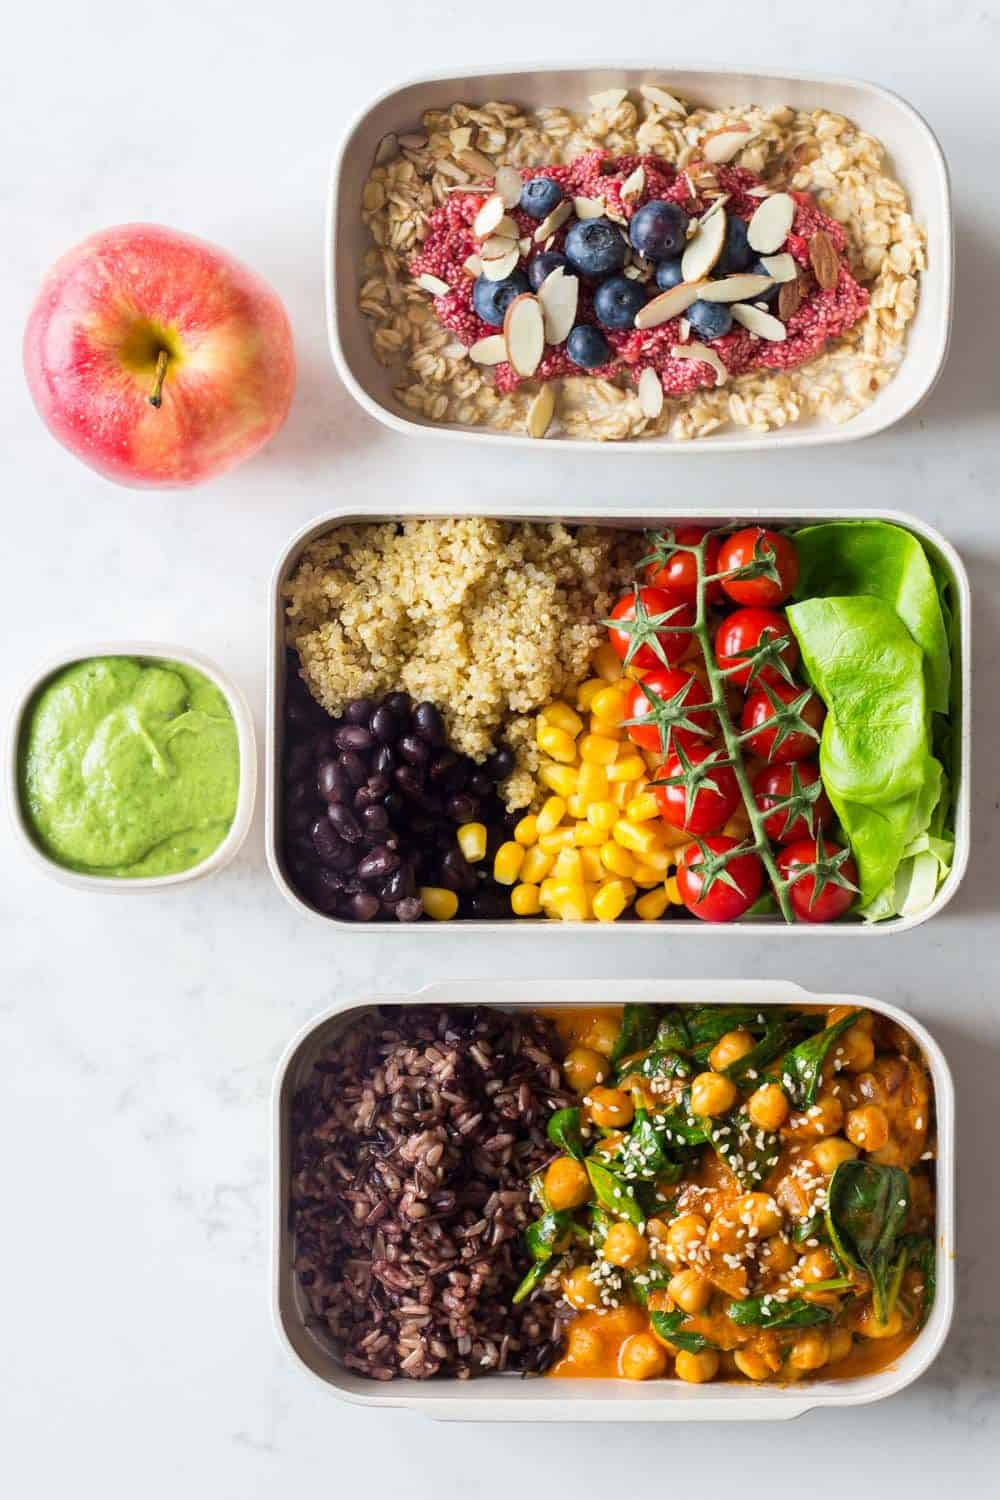 Nutritionally-Balanced Vegan Meal Plan